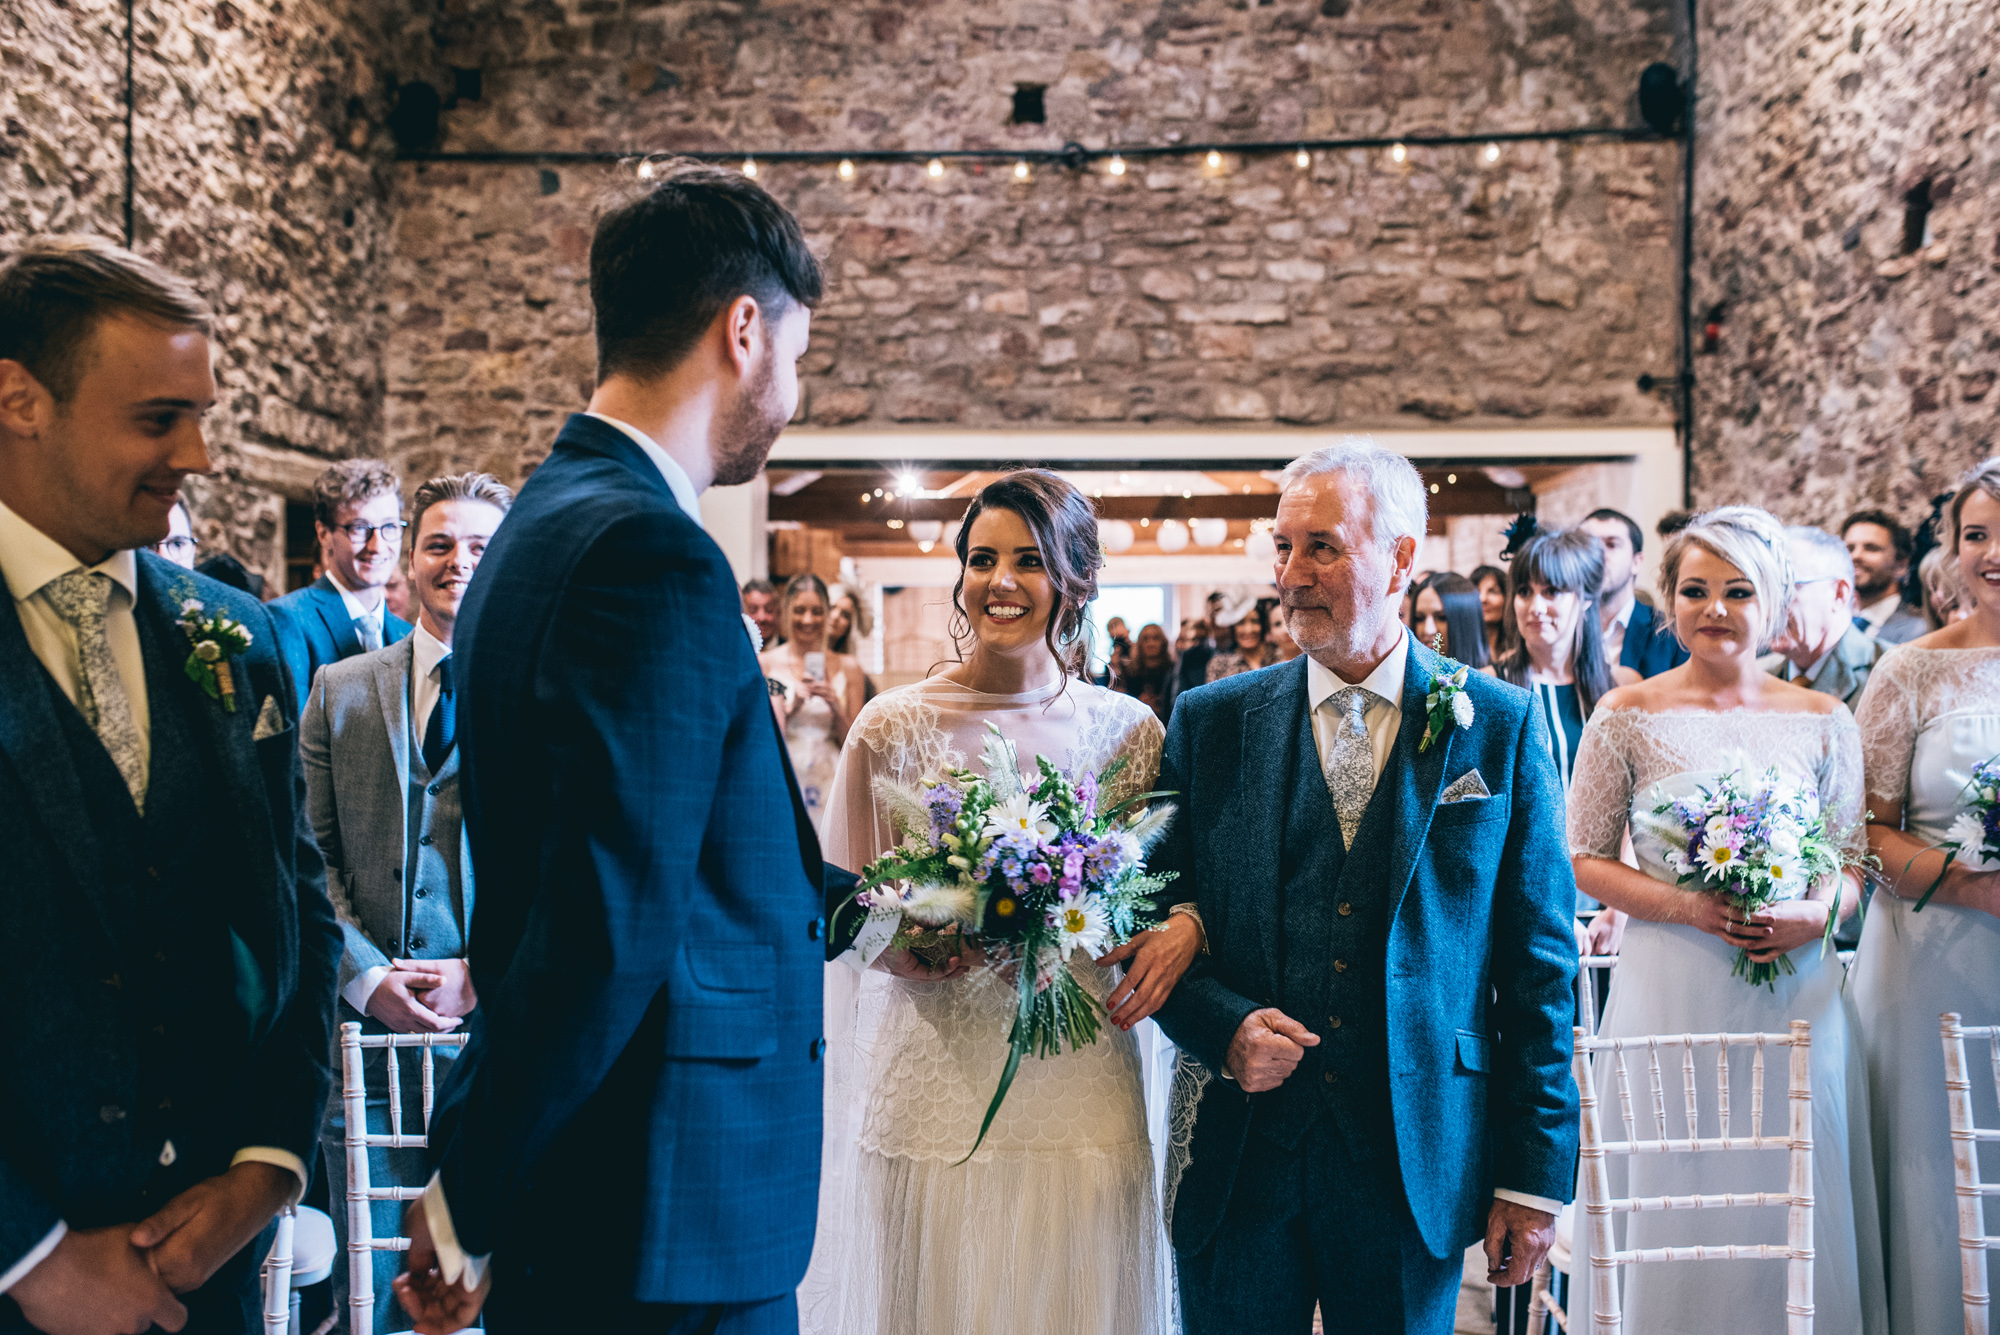 Kate-Beaumont-Sheffield-Lucy-Bohemian-Lace-Dress-Barn-Wedding-Cumbria-8.jpg